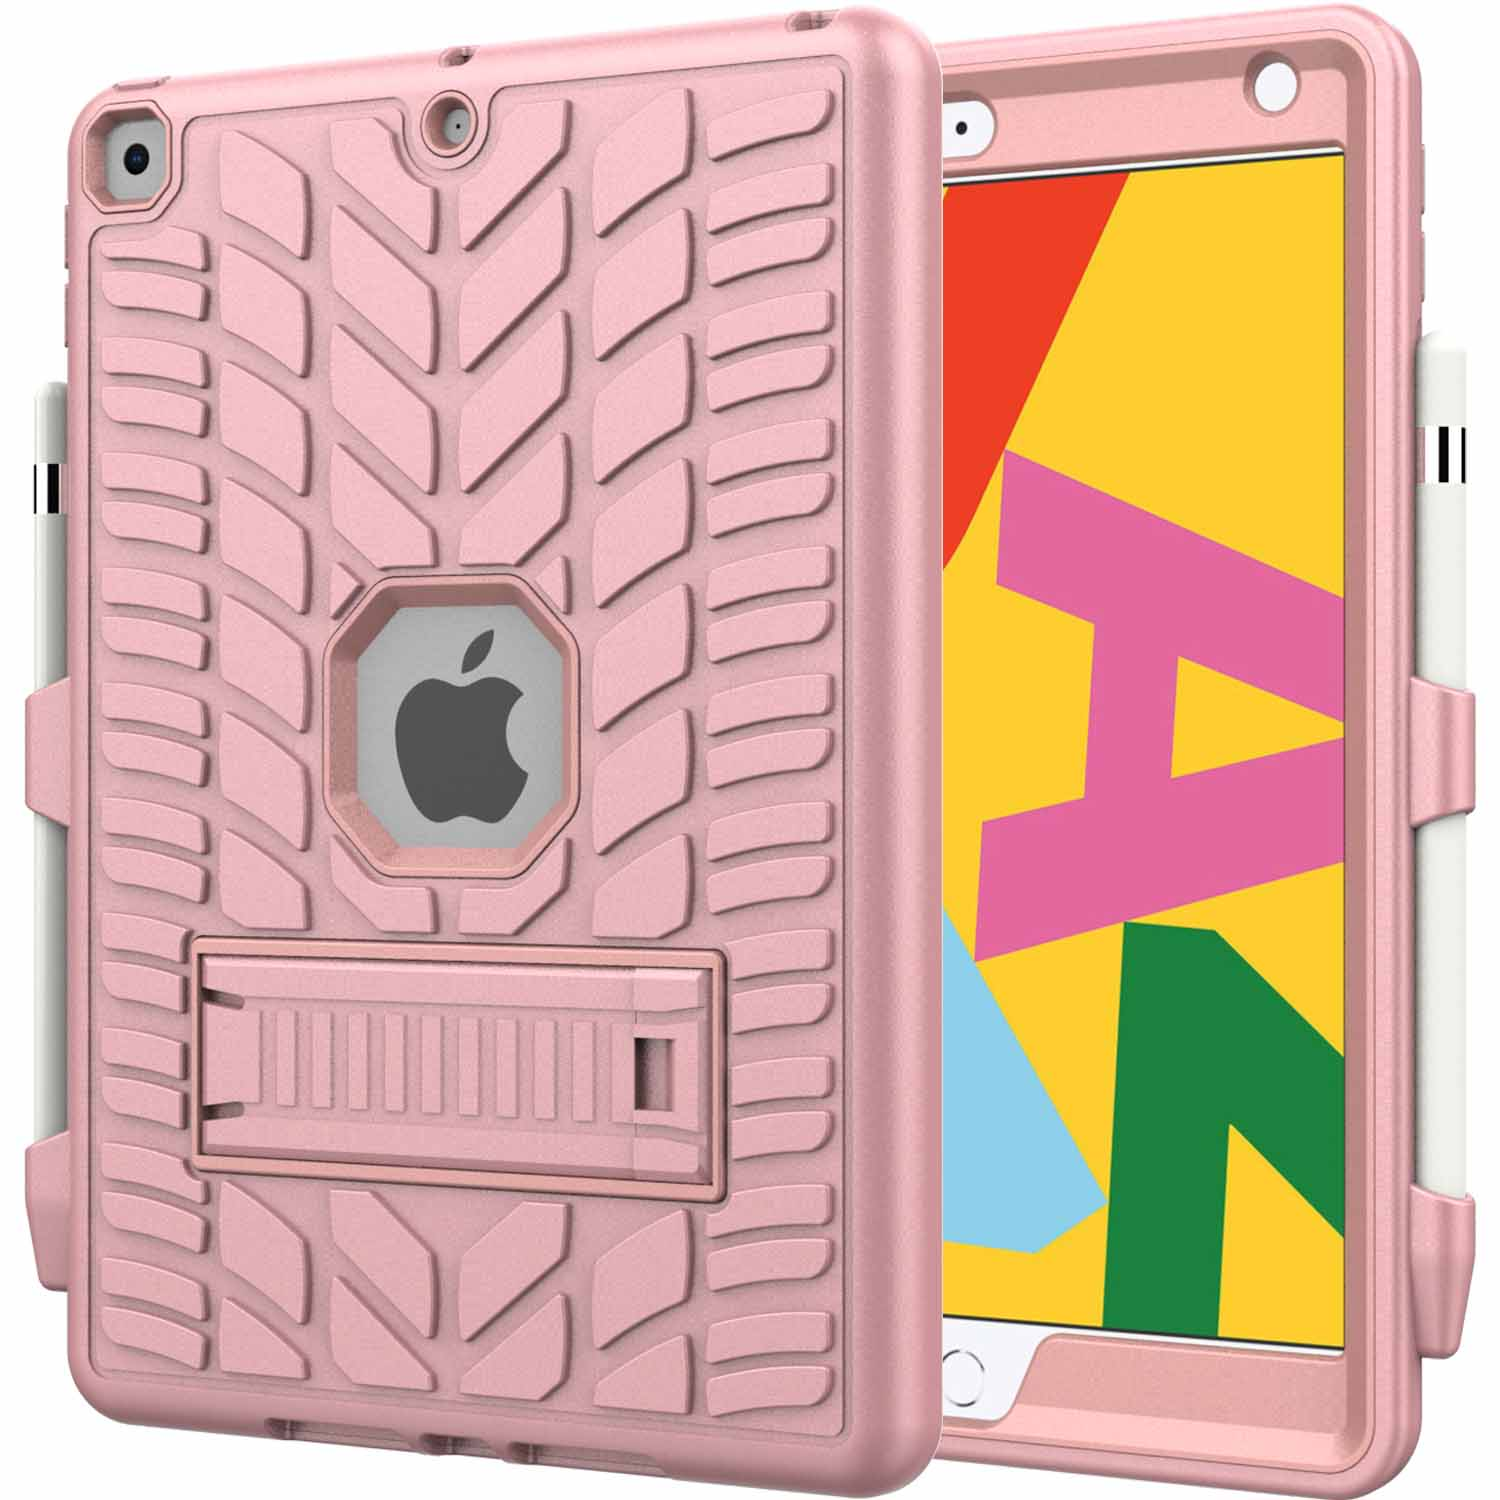 3 Green For iPad 8th Generation 10 2 Case 2020 with Pencil Holder Tire Pattern Shockproof Hard PC